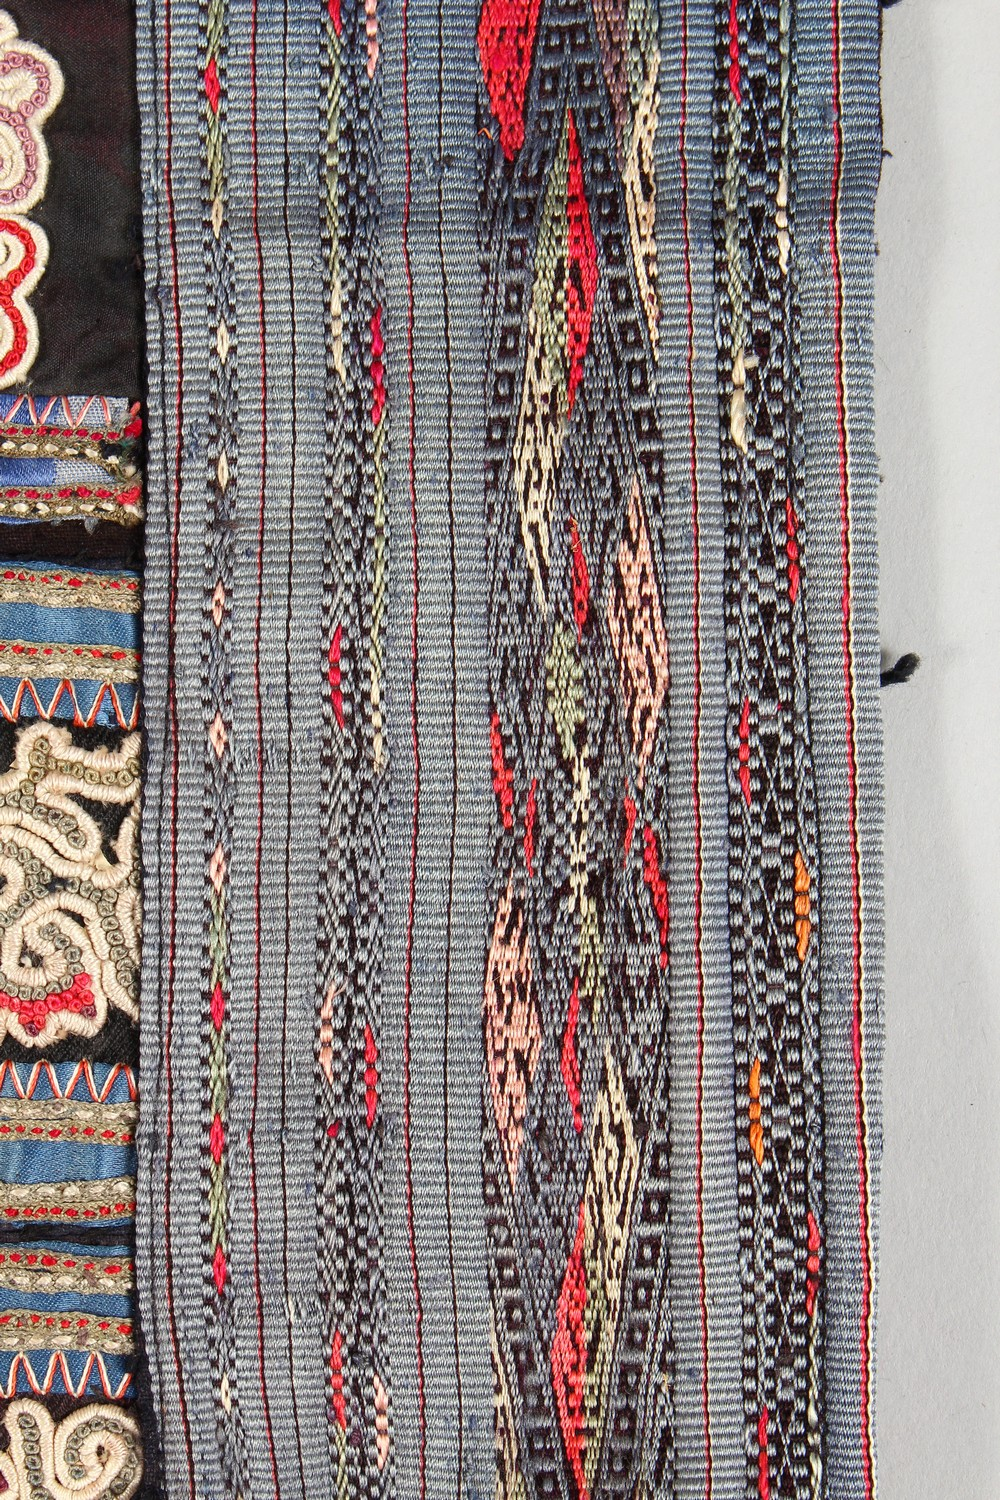 A GOOD 19TH / 20TH CENTURY CHINESE EMBROIDERED SILK BABY CARRY, the textile embroidered with various - Image 3 of 5